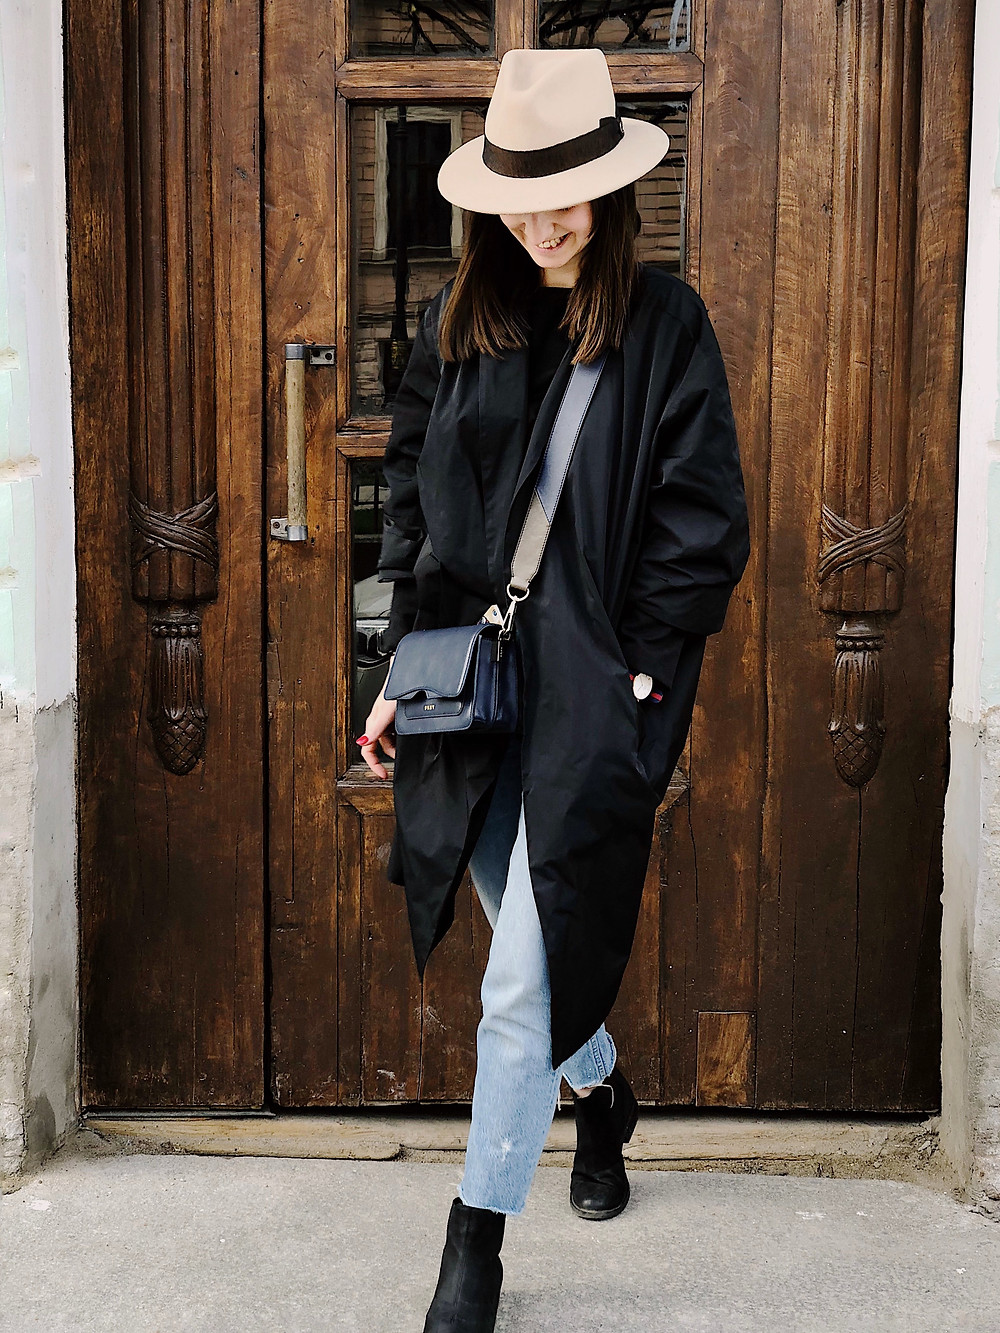 woman in coat and hat, woman in jeans and hat, woman in travel outfit, crossbody bag